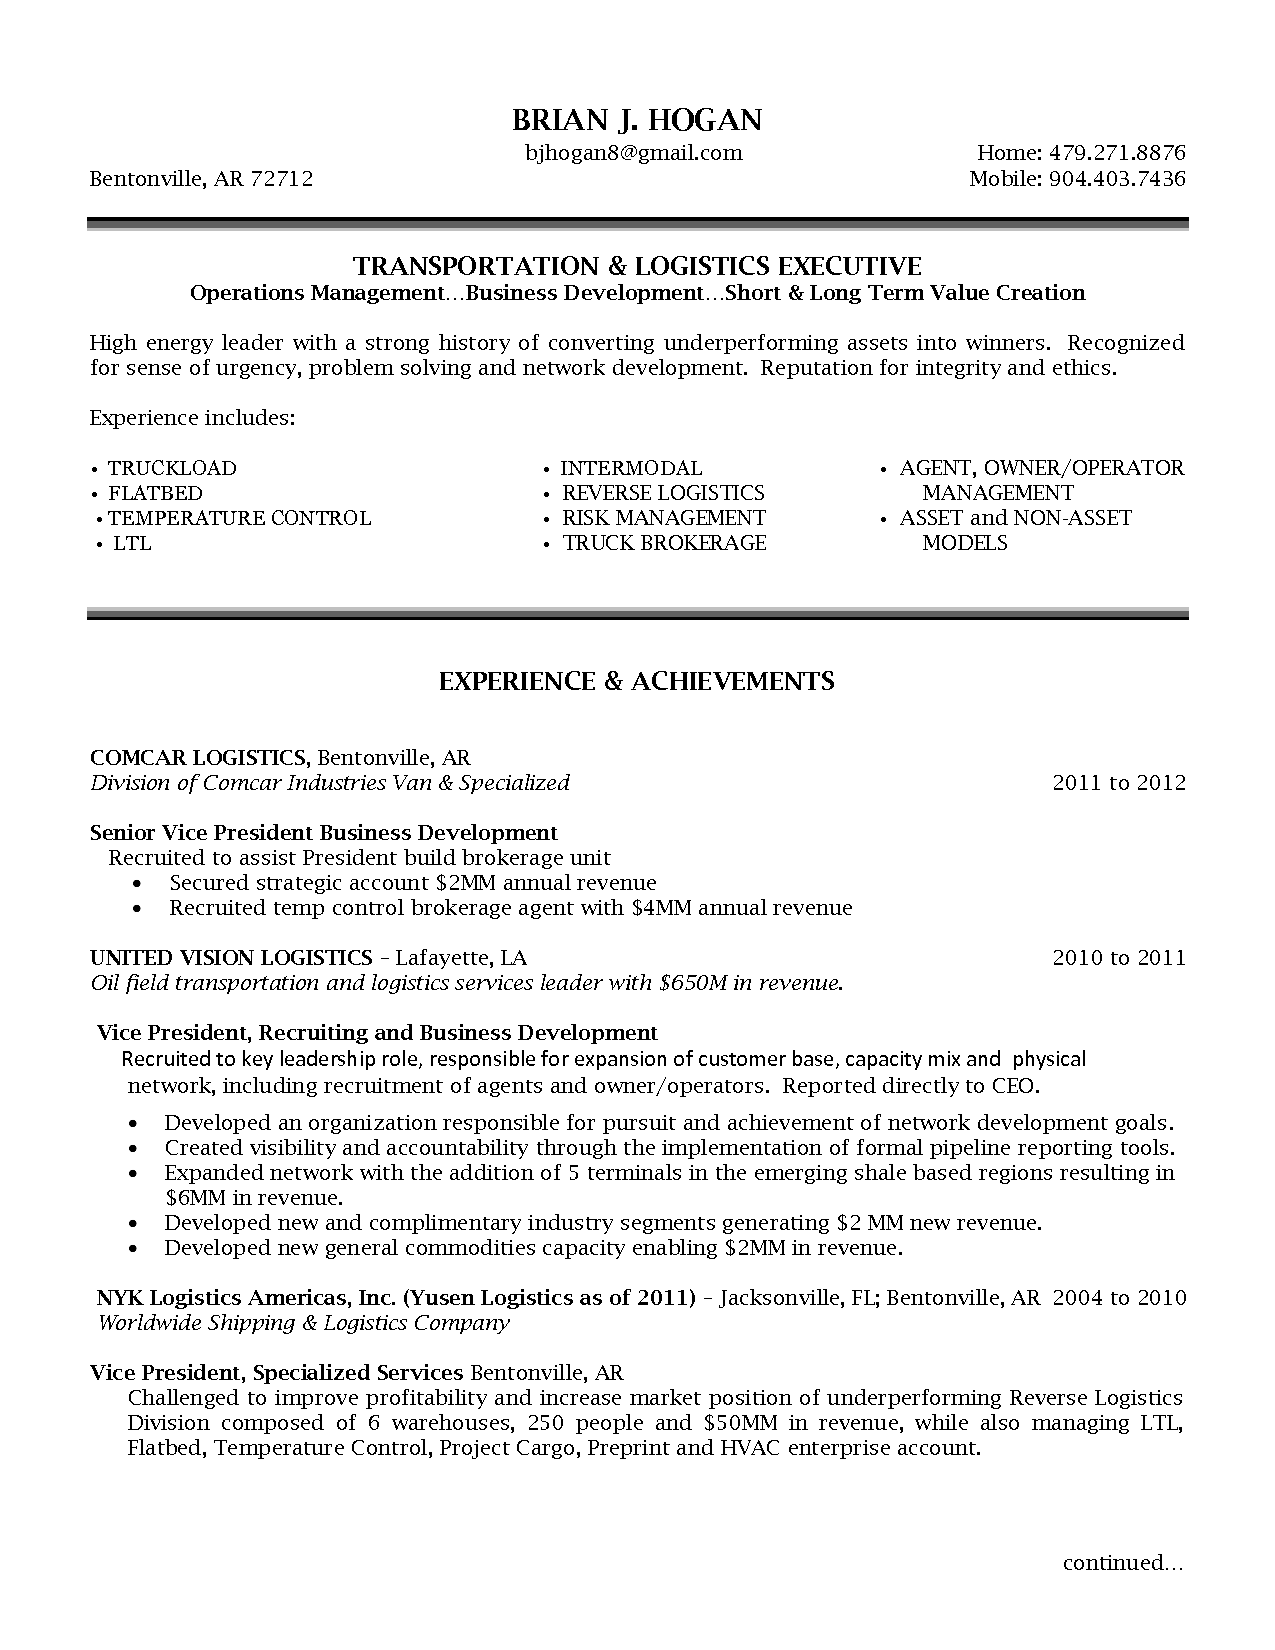 Operation Manager Resume Senior Logistic Management Resume  Vp Director Operations